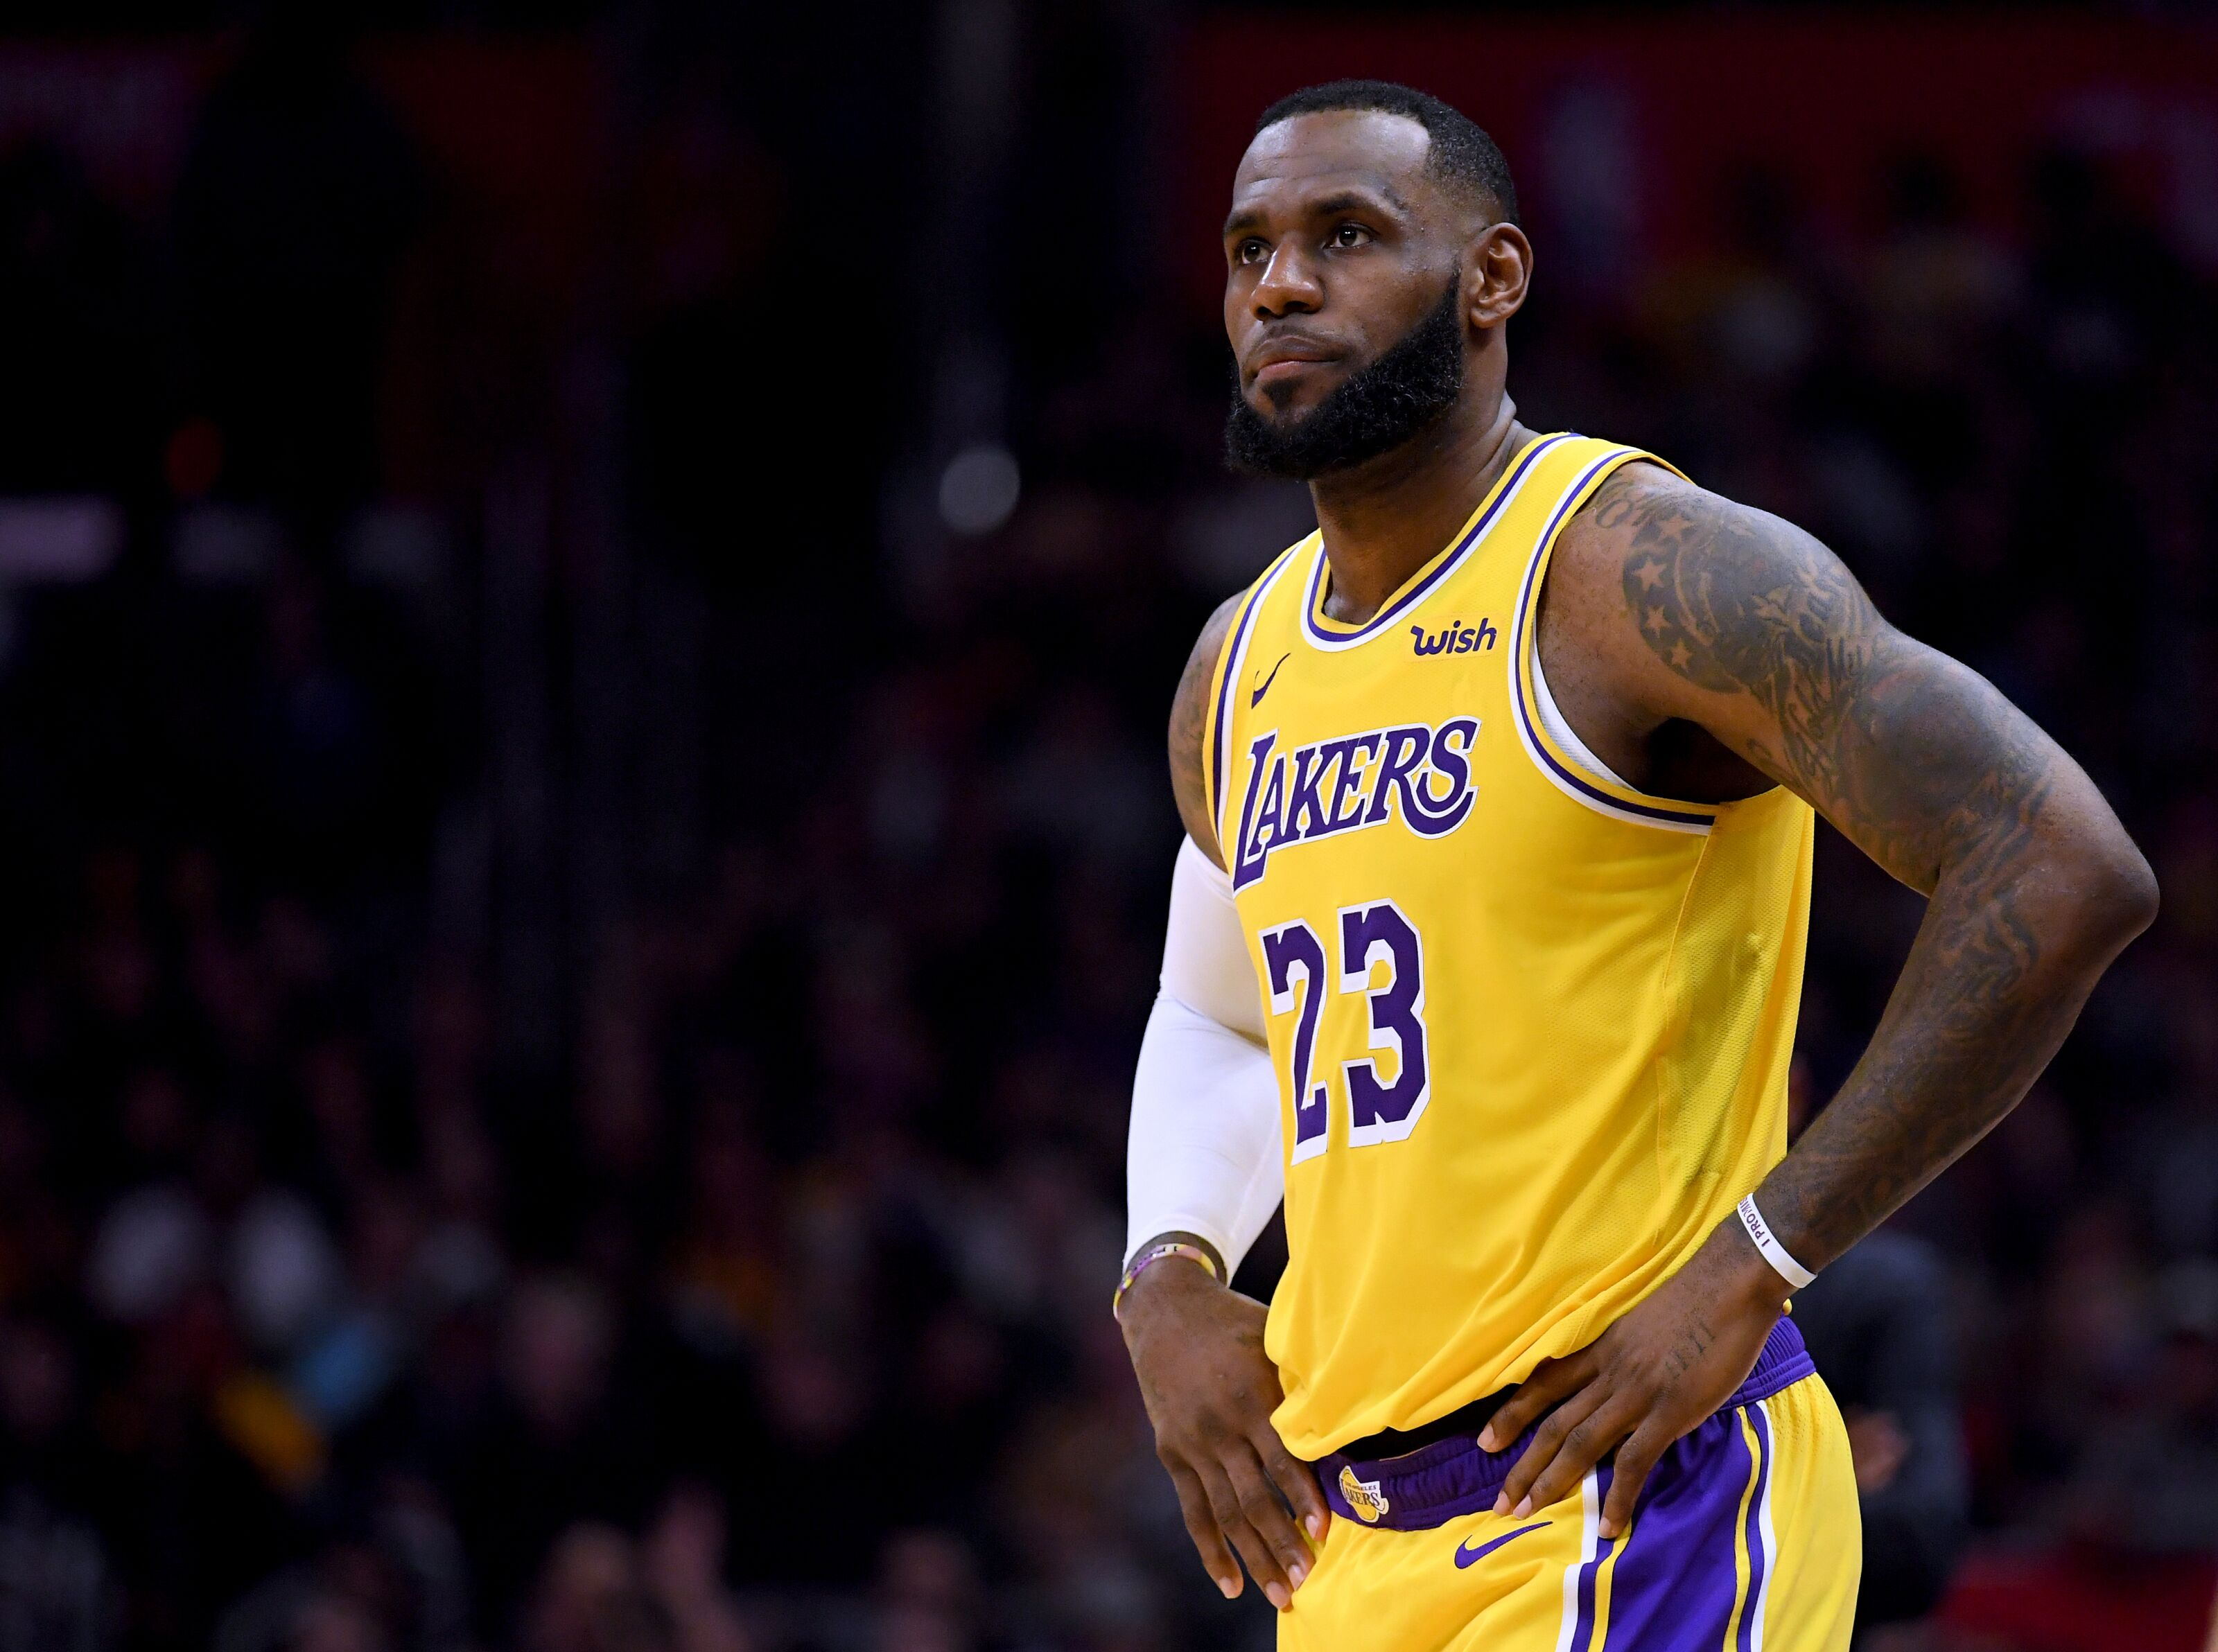 Los Angeles Lakers: After missing playoffs, it won't get any easier for LeBron